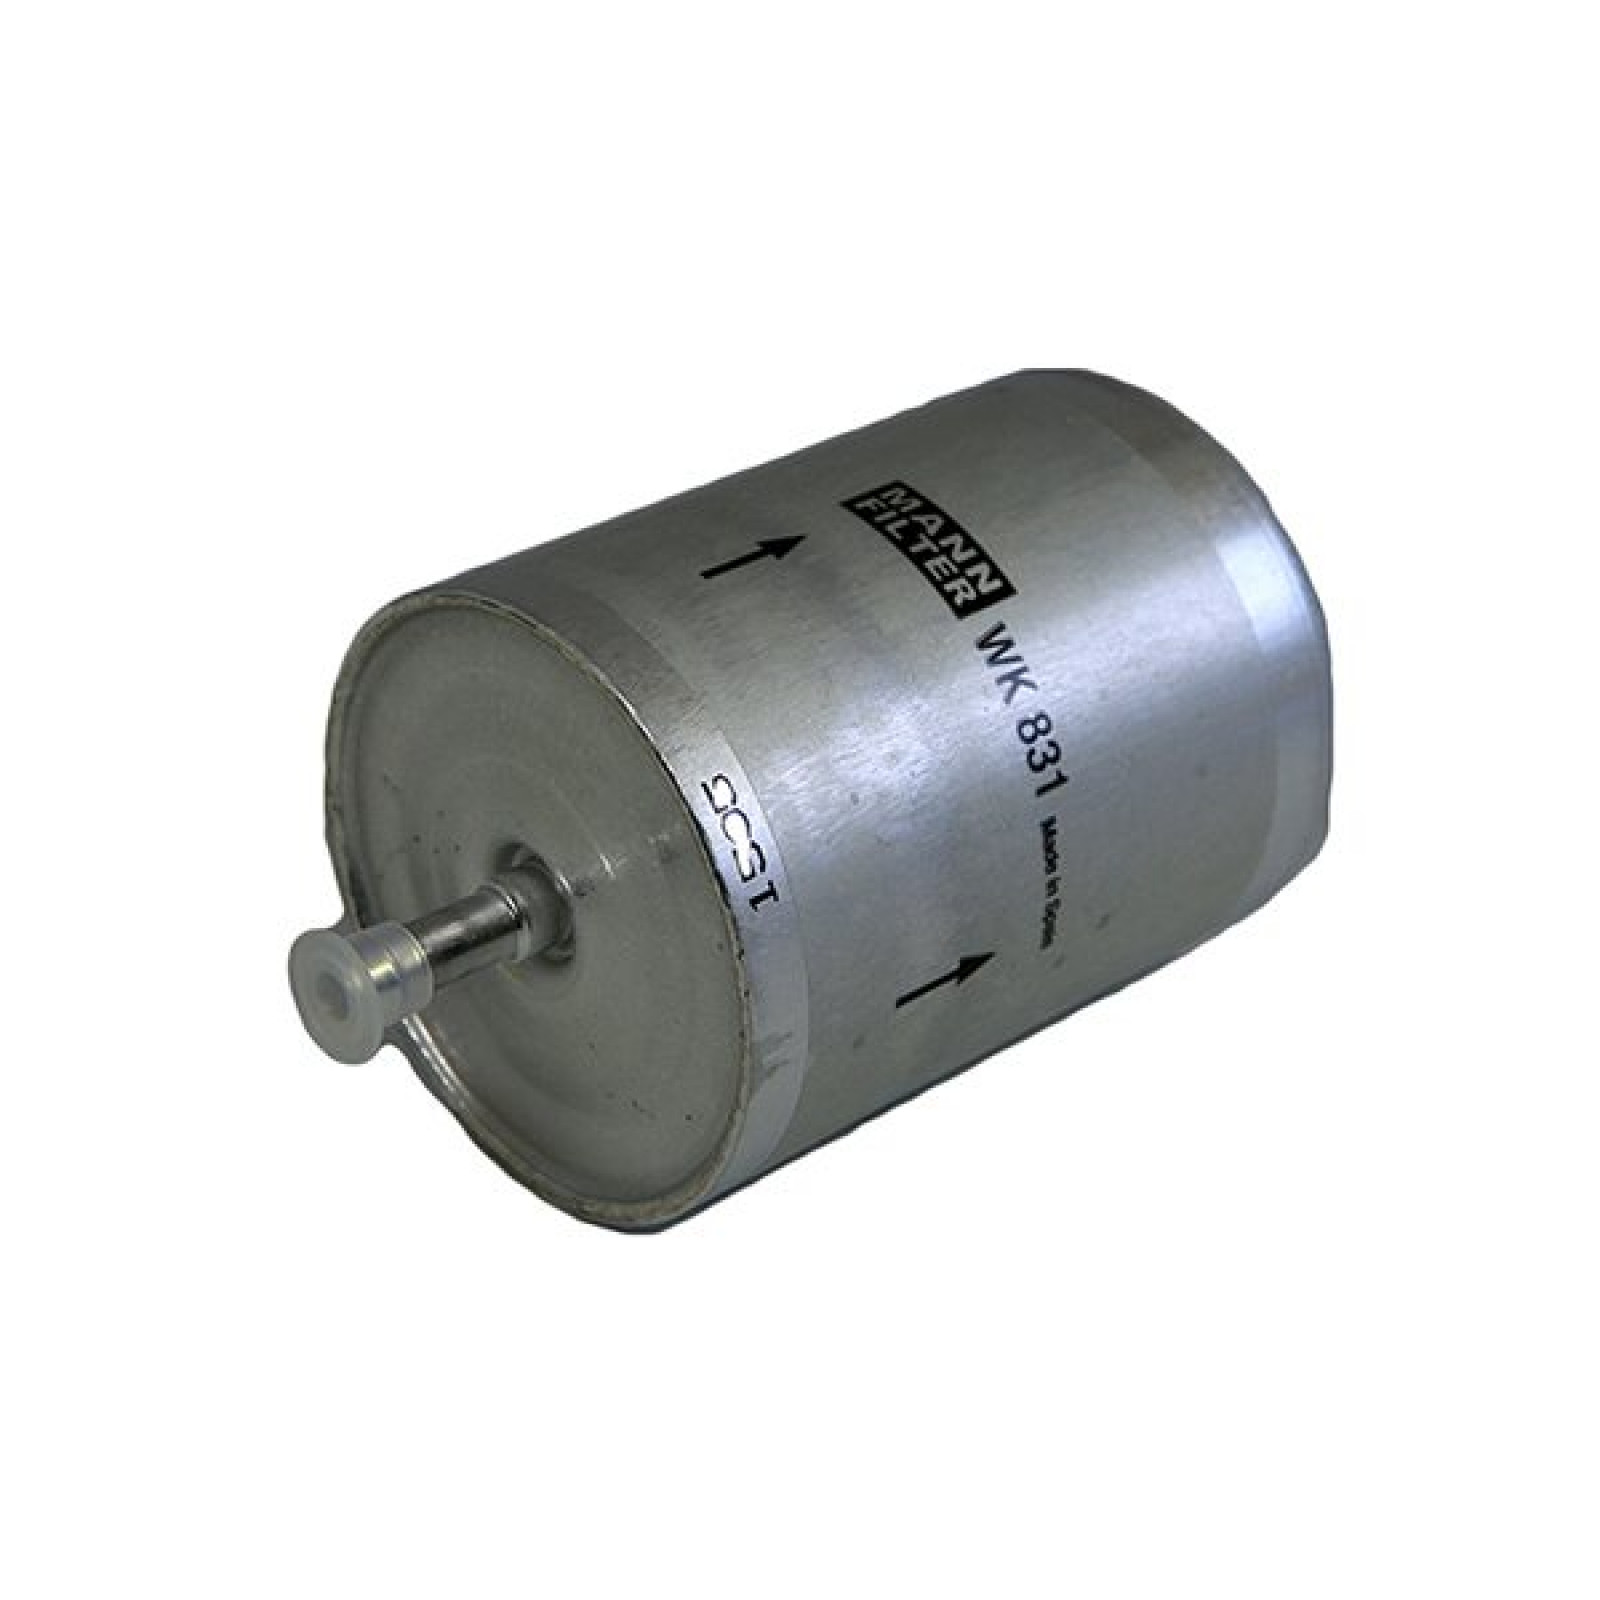 Mercedes benz sl 129 fuel filter 0024772801 the sl shop for Mercedes benz fuel filter